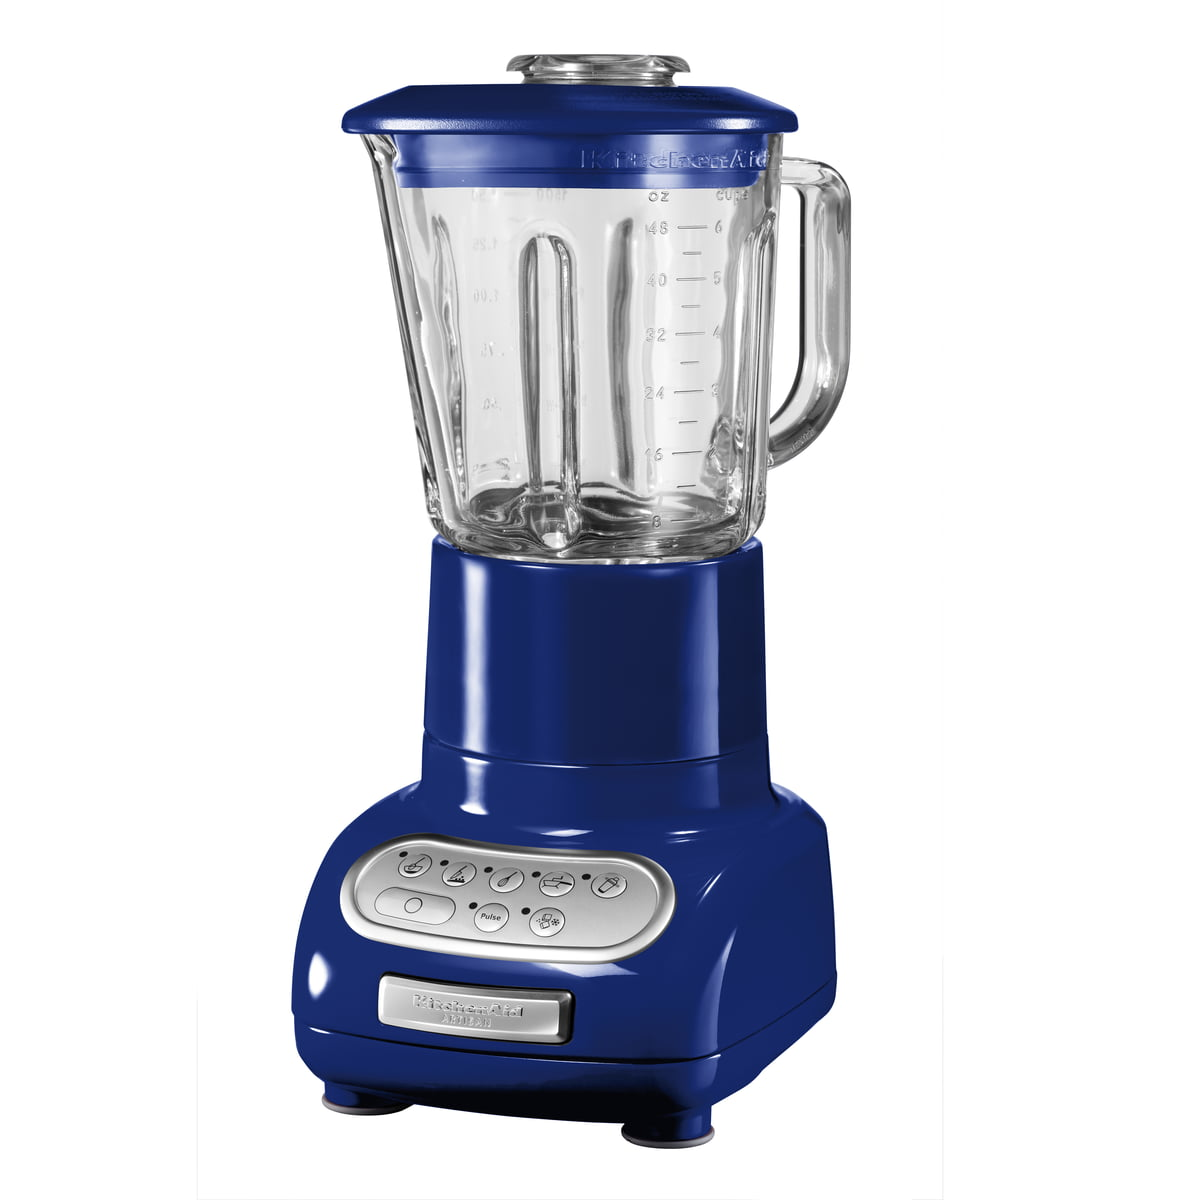 Wonderful Artisan Blender With Glass Container, Blue